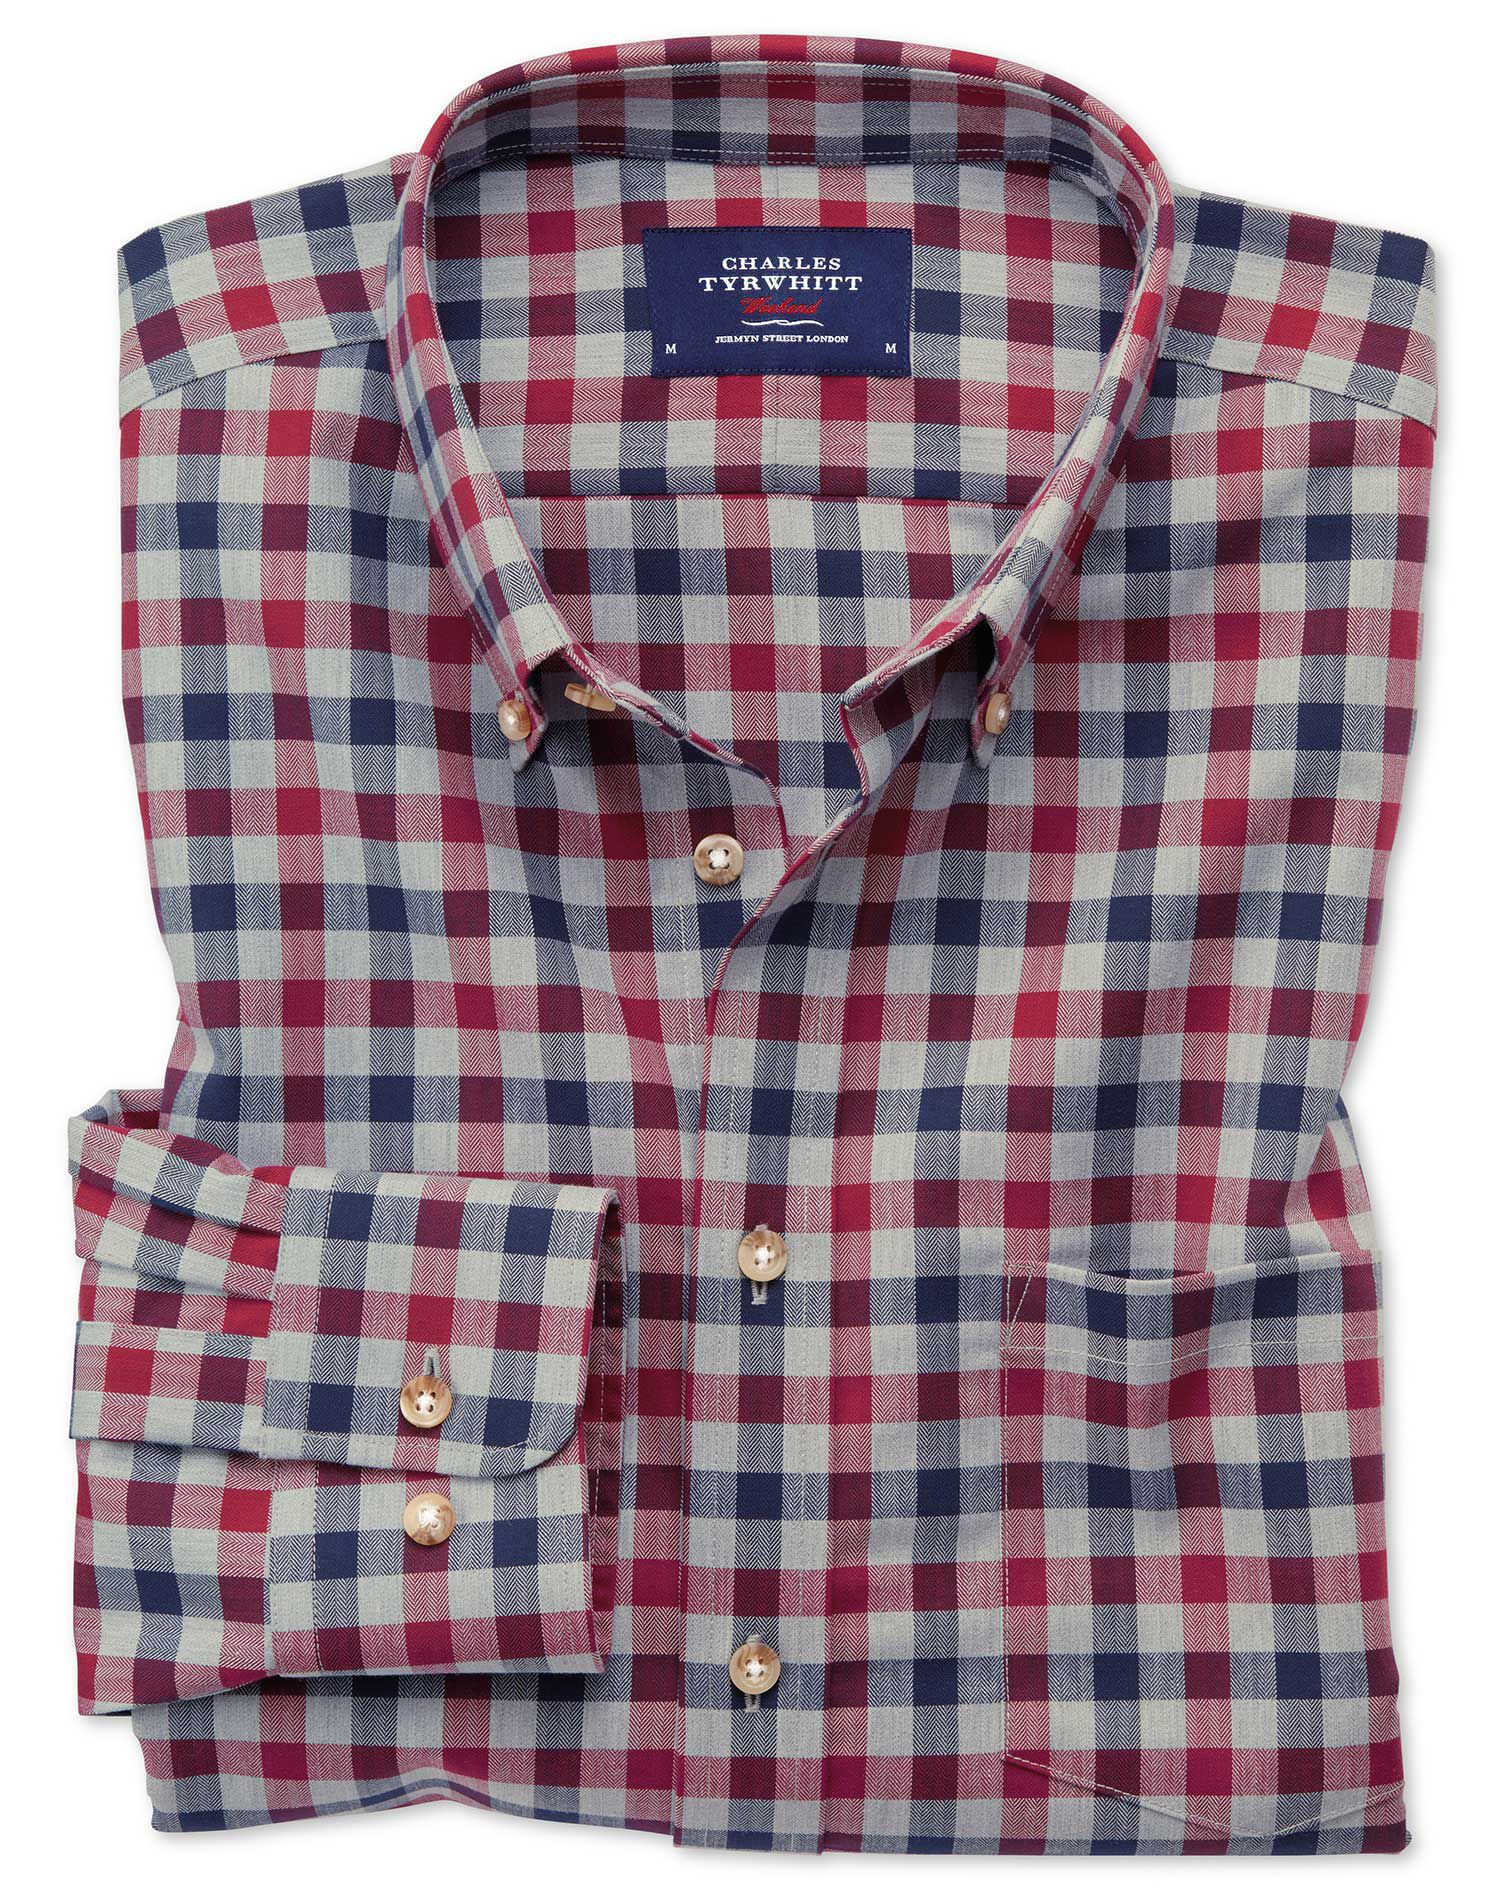 Slim Fit Button-Down Non-Iron Twill Red and Navy Gingham Cotton Shirt Single Cuff Size XS by Charles